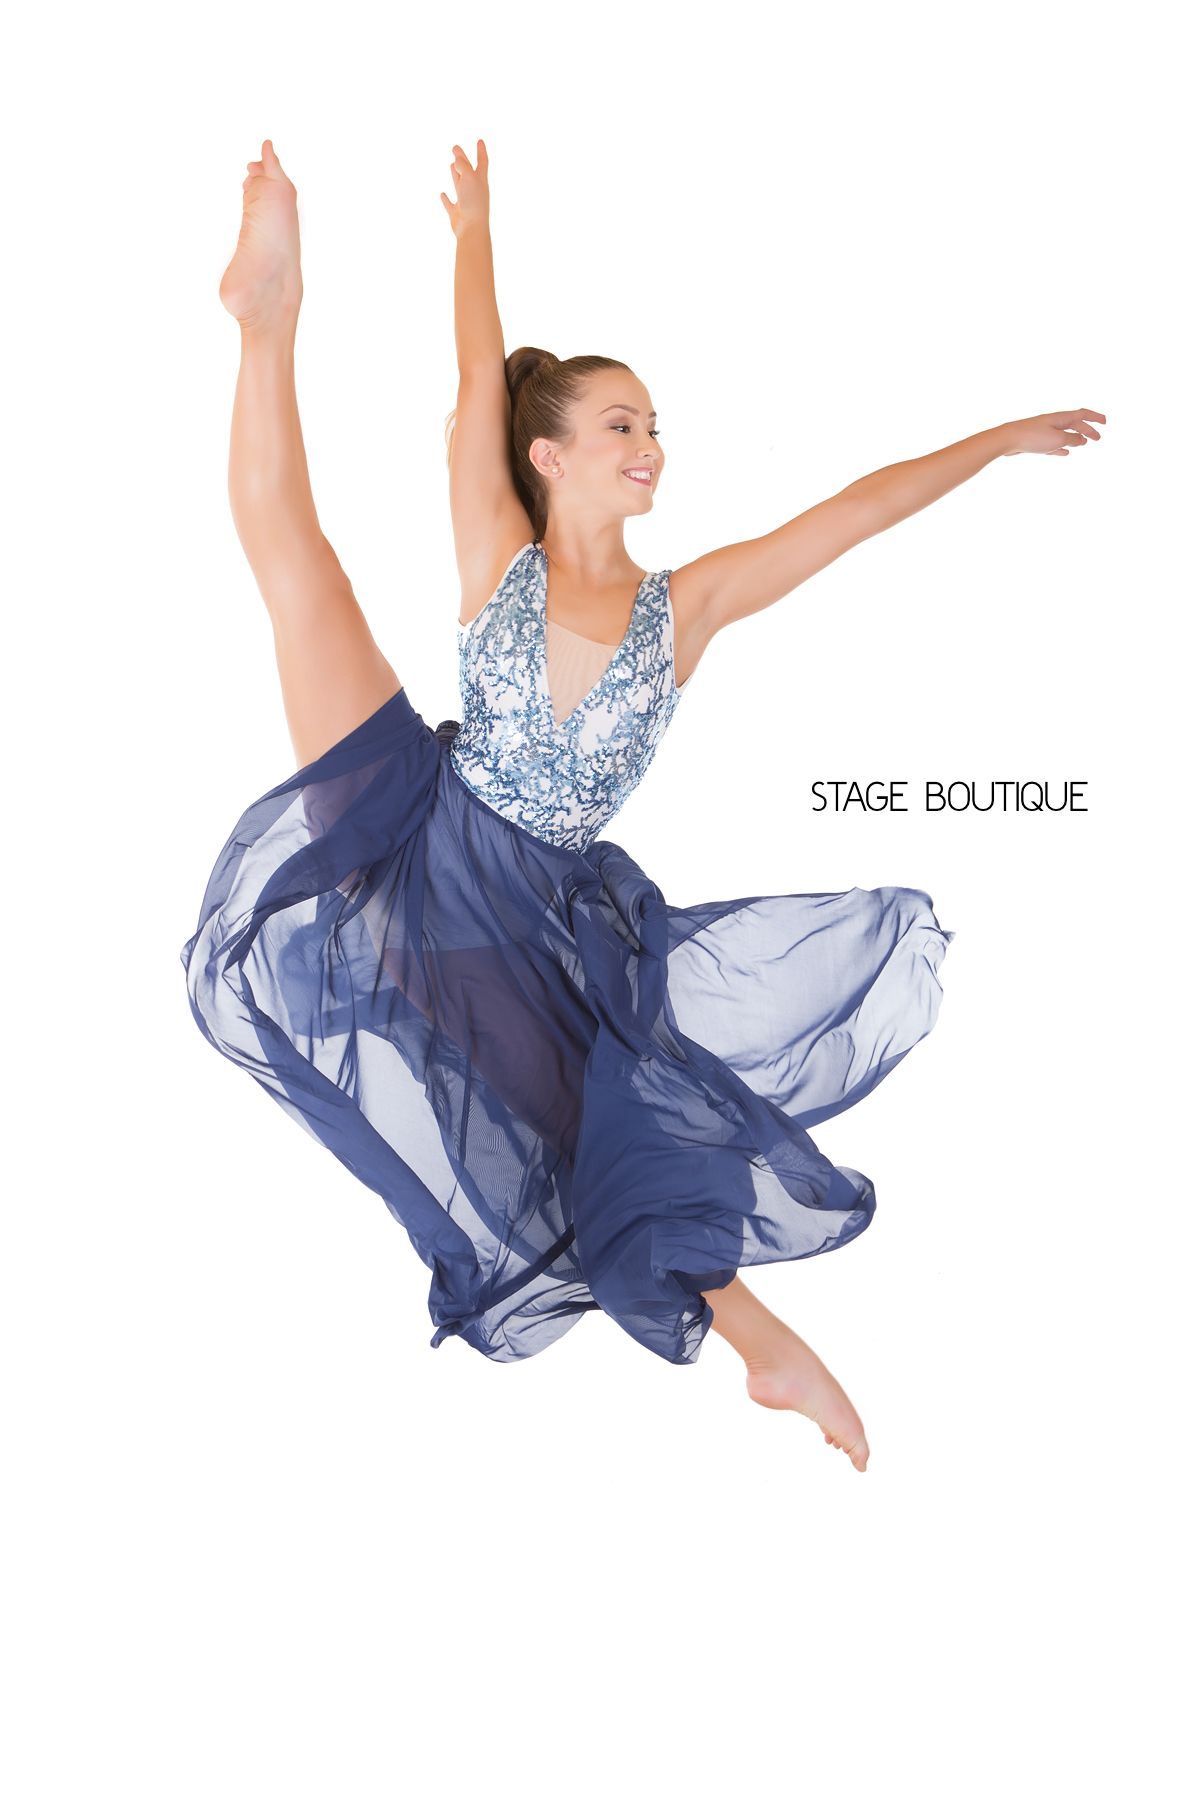 LYRICAL DRESS - WINTER Lyrical Dress Slow Modern Dance Costumes $79 Www.stageboutique.com ...